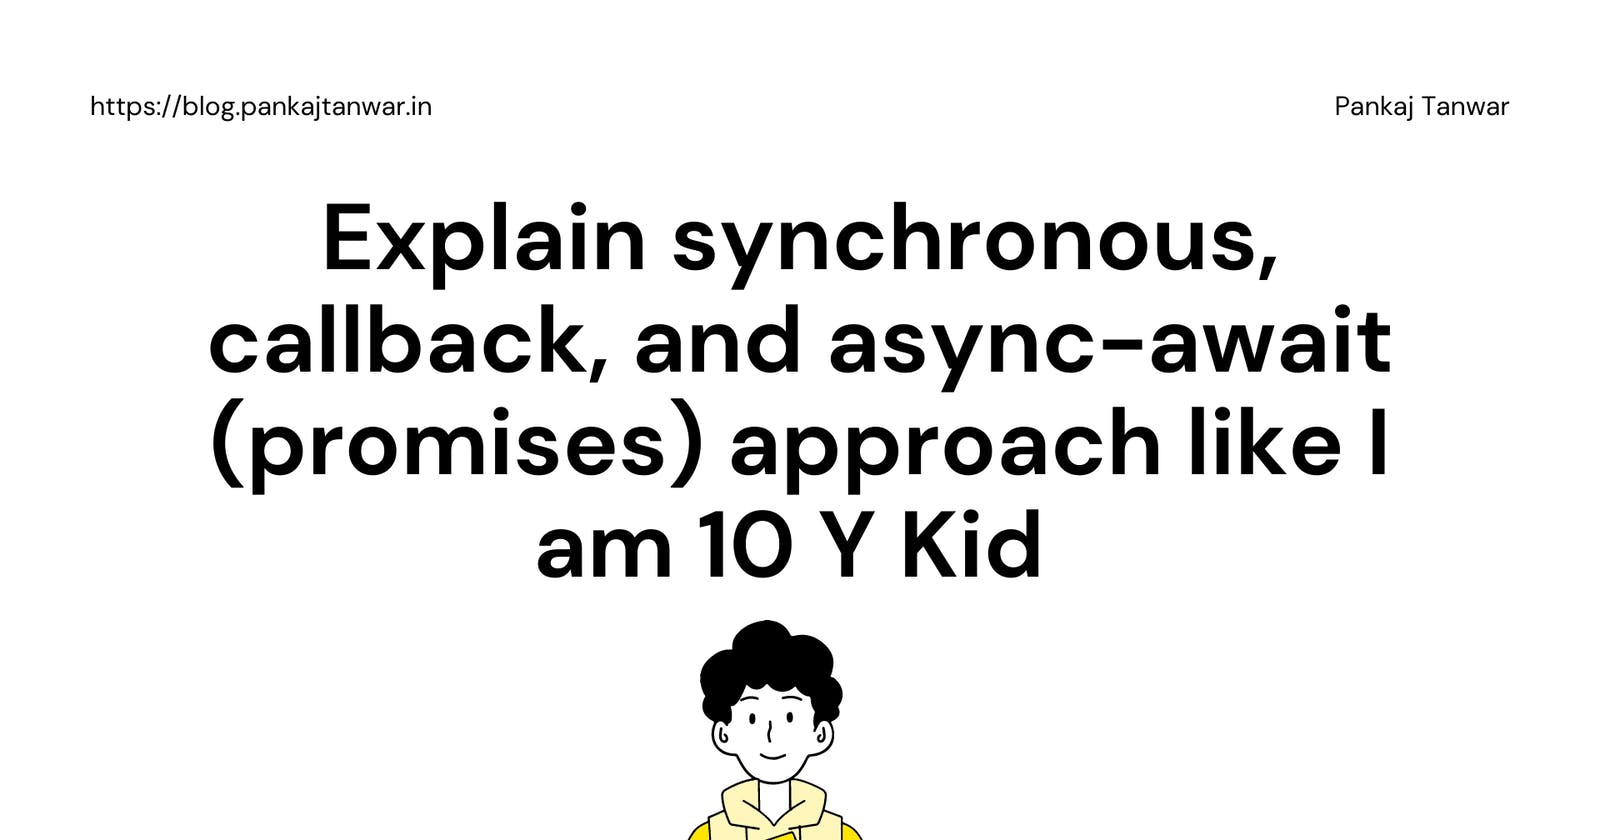 Interesting analogy to understand synchronous, callback, and async-await (promises) approach like I am 10 Y Kid 🧒